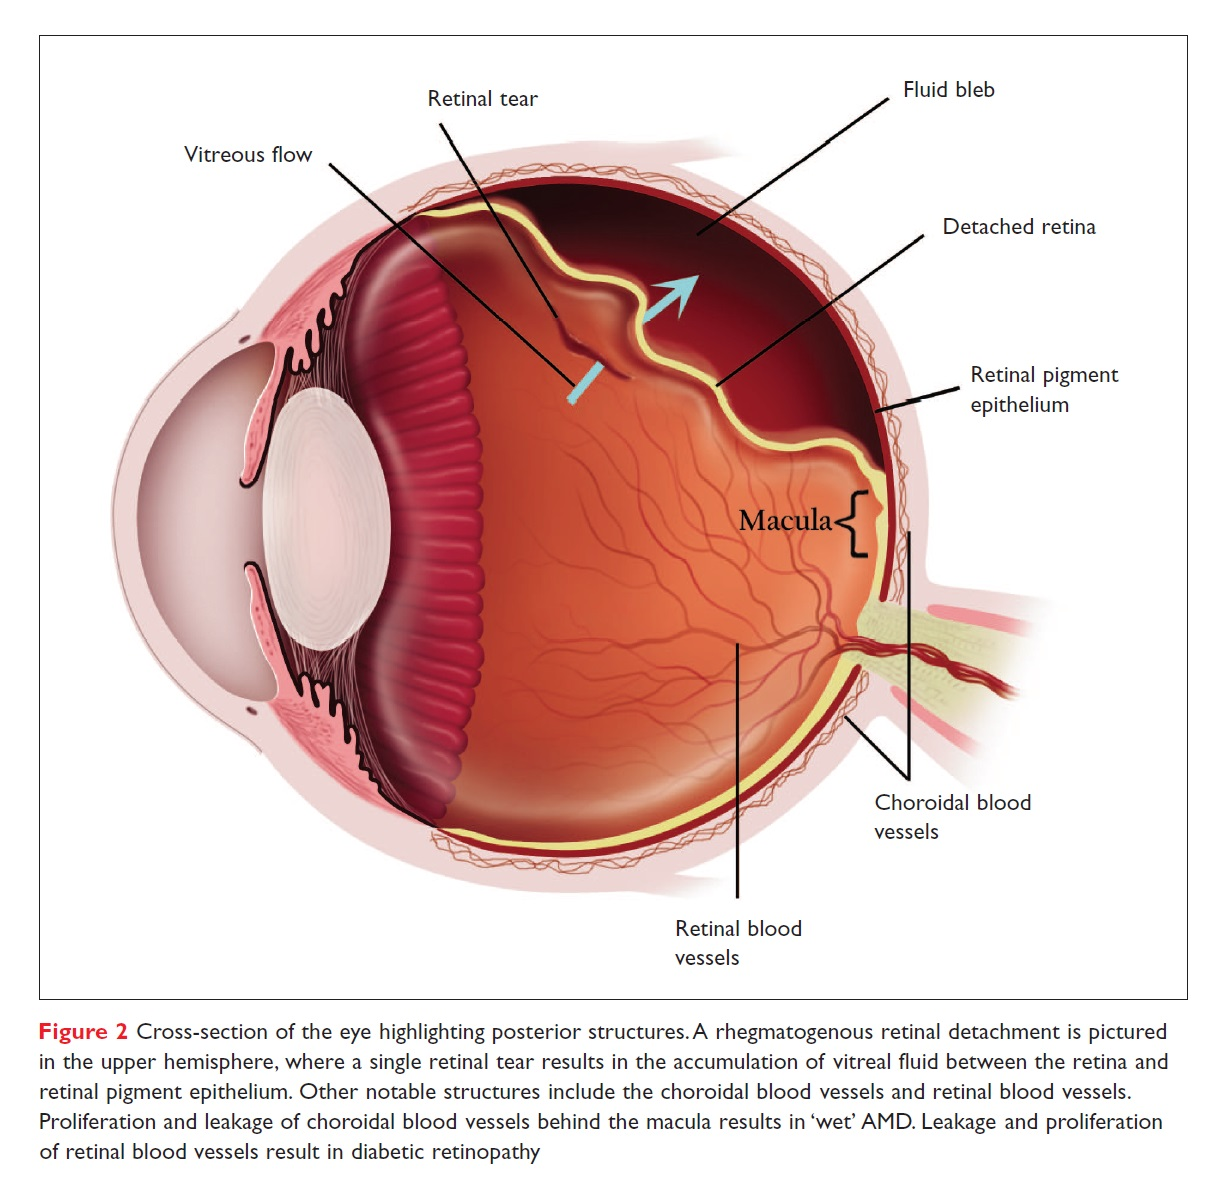 Figure 2 Cross-section of the eye highlighting posterior structures